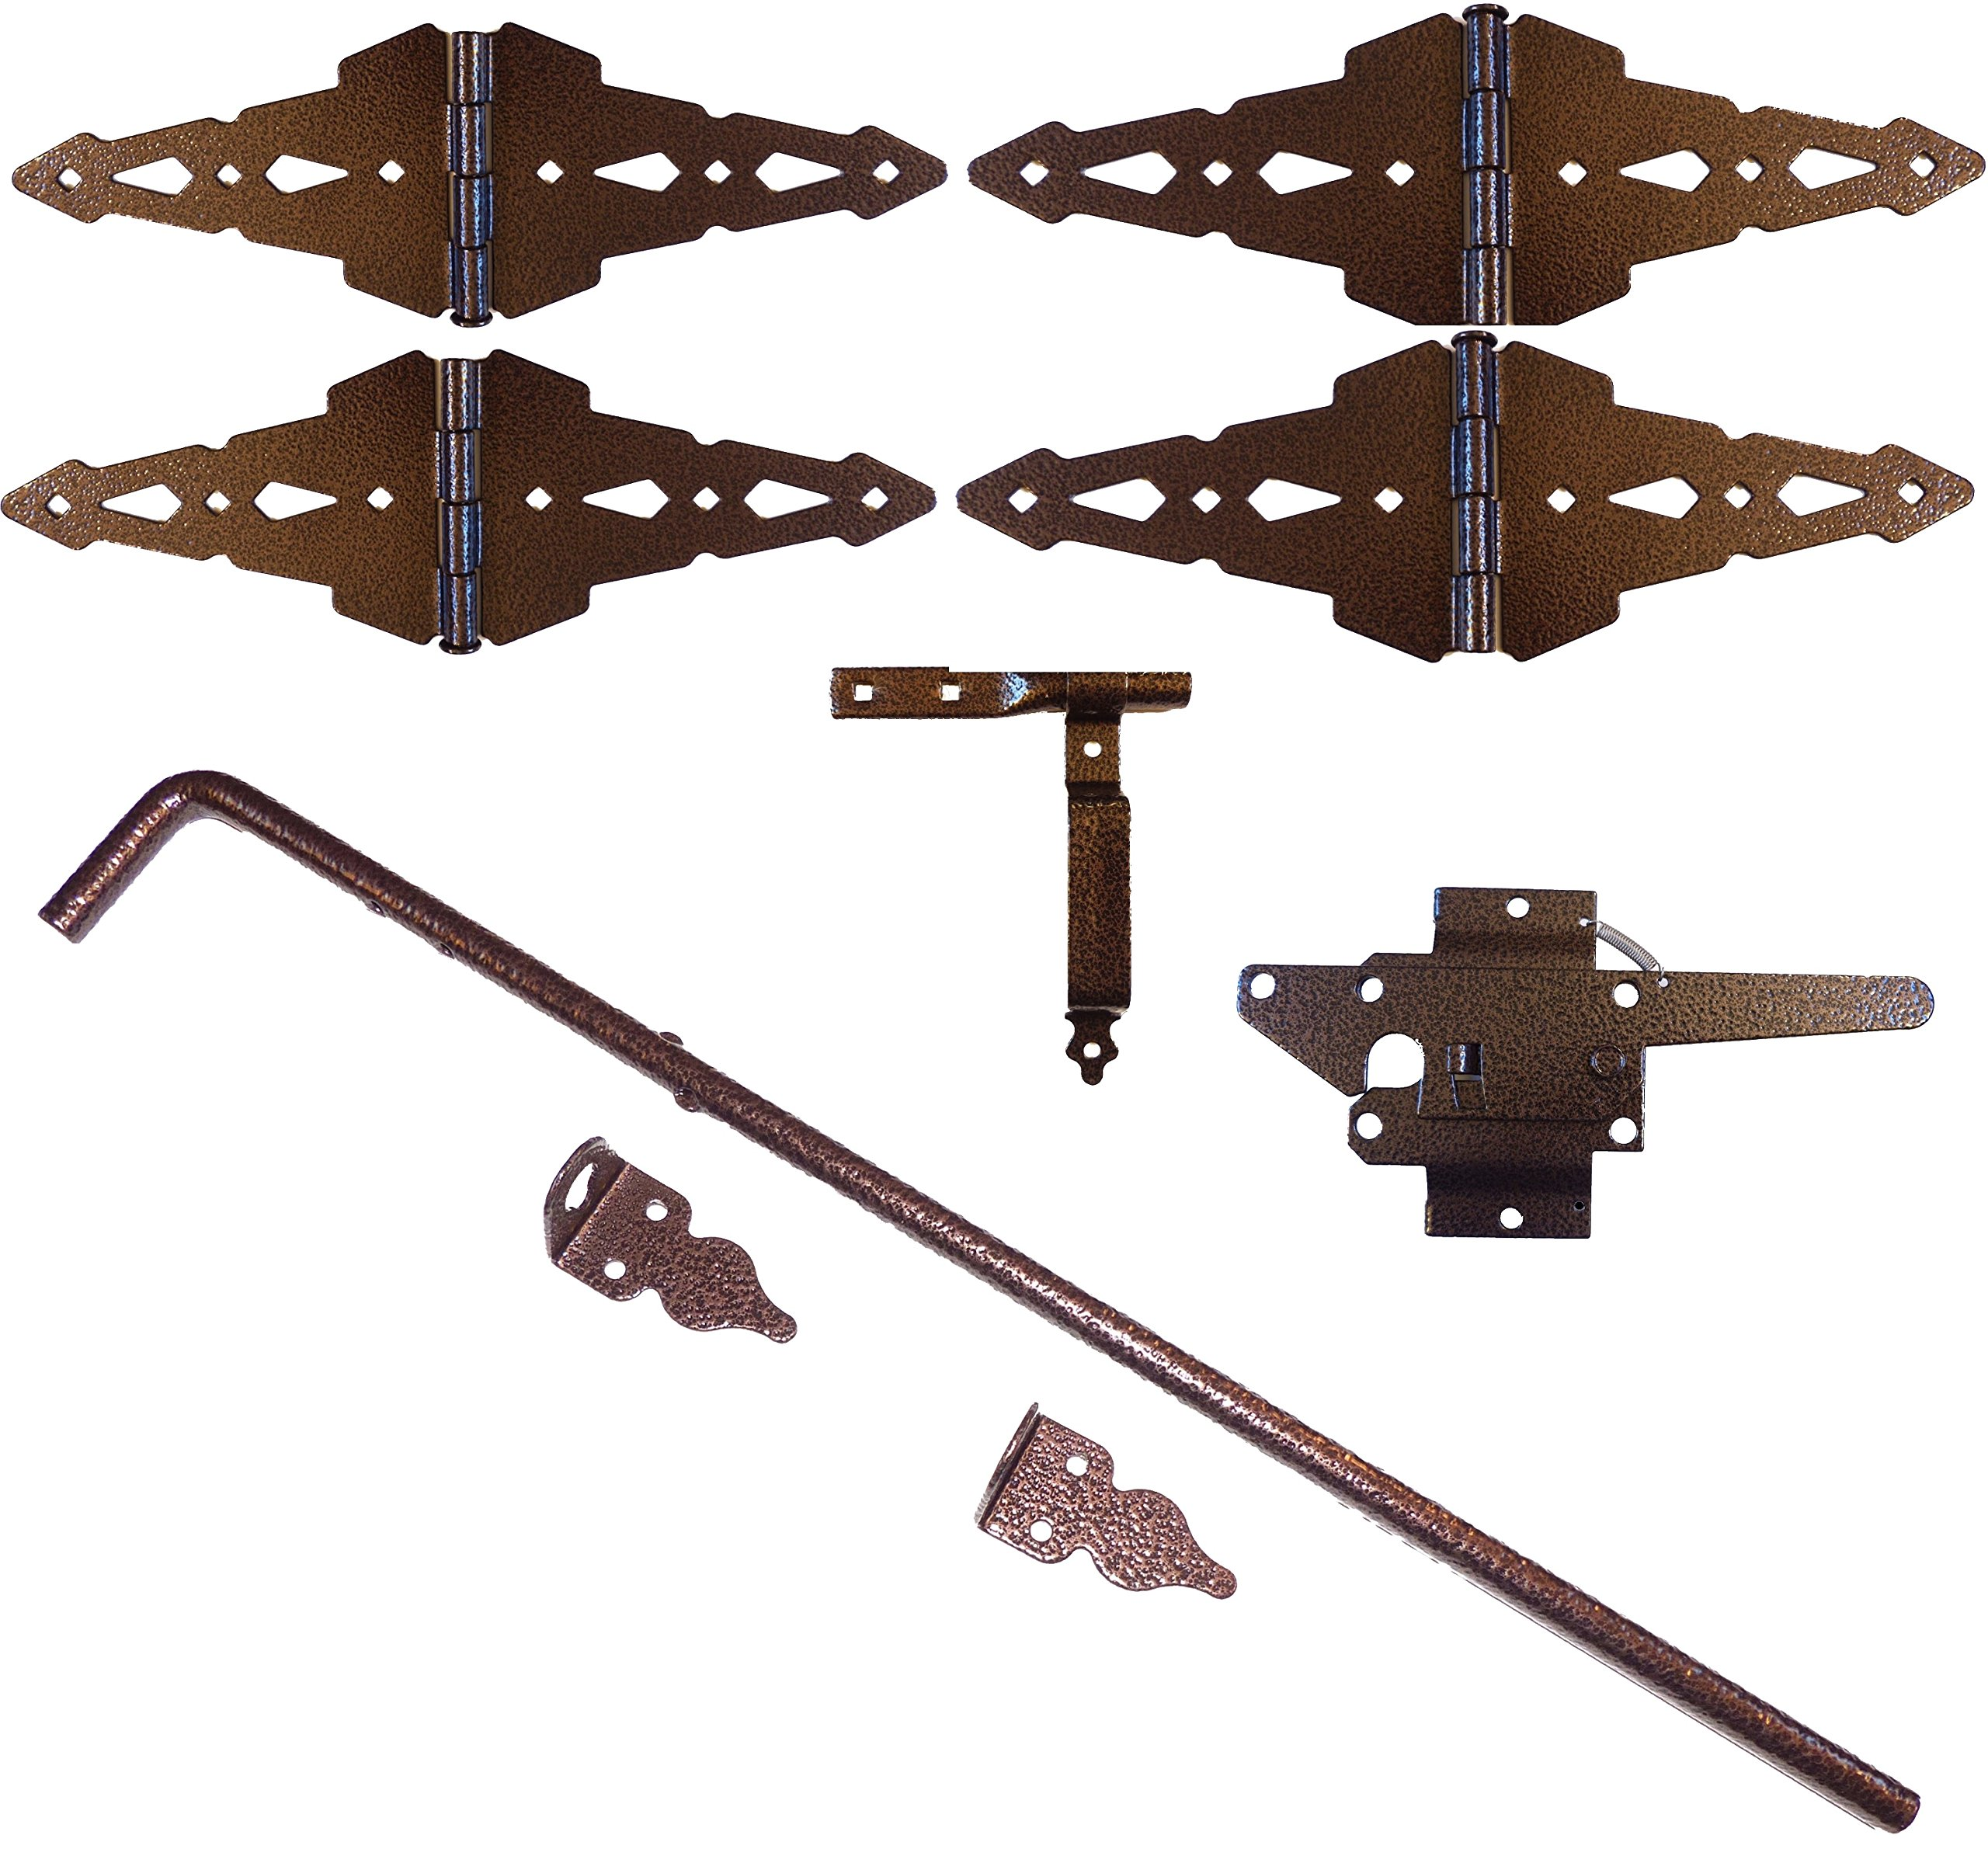 Wood Fence Double Gate Kit - Hammered Bronze Finish (Wood Gate Hinges, Latch and Drop Rod) by Custom Fence